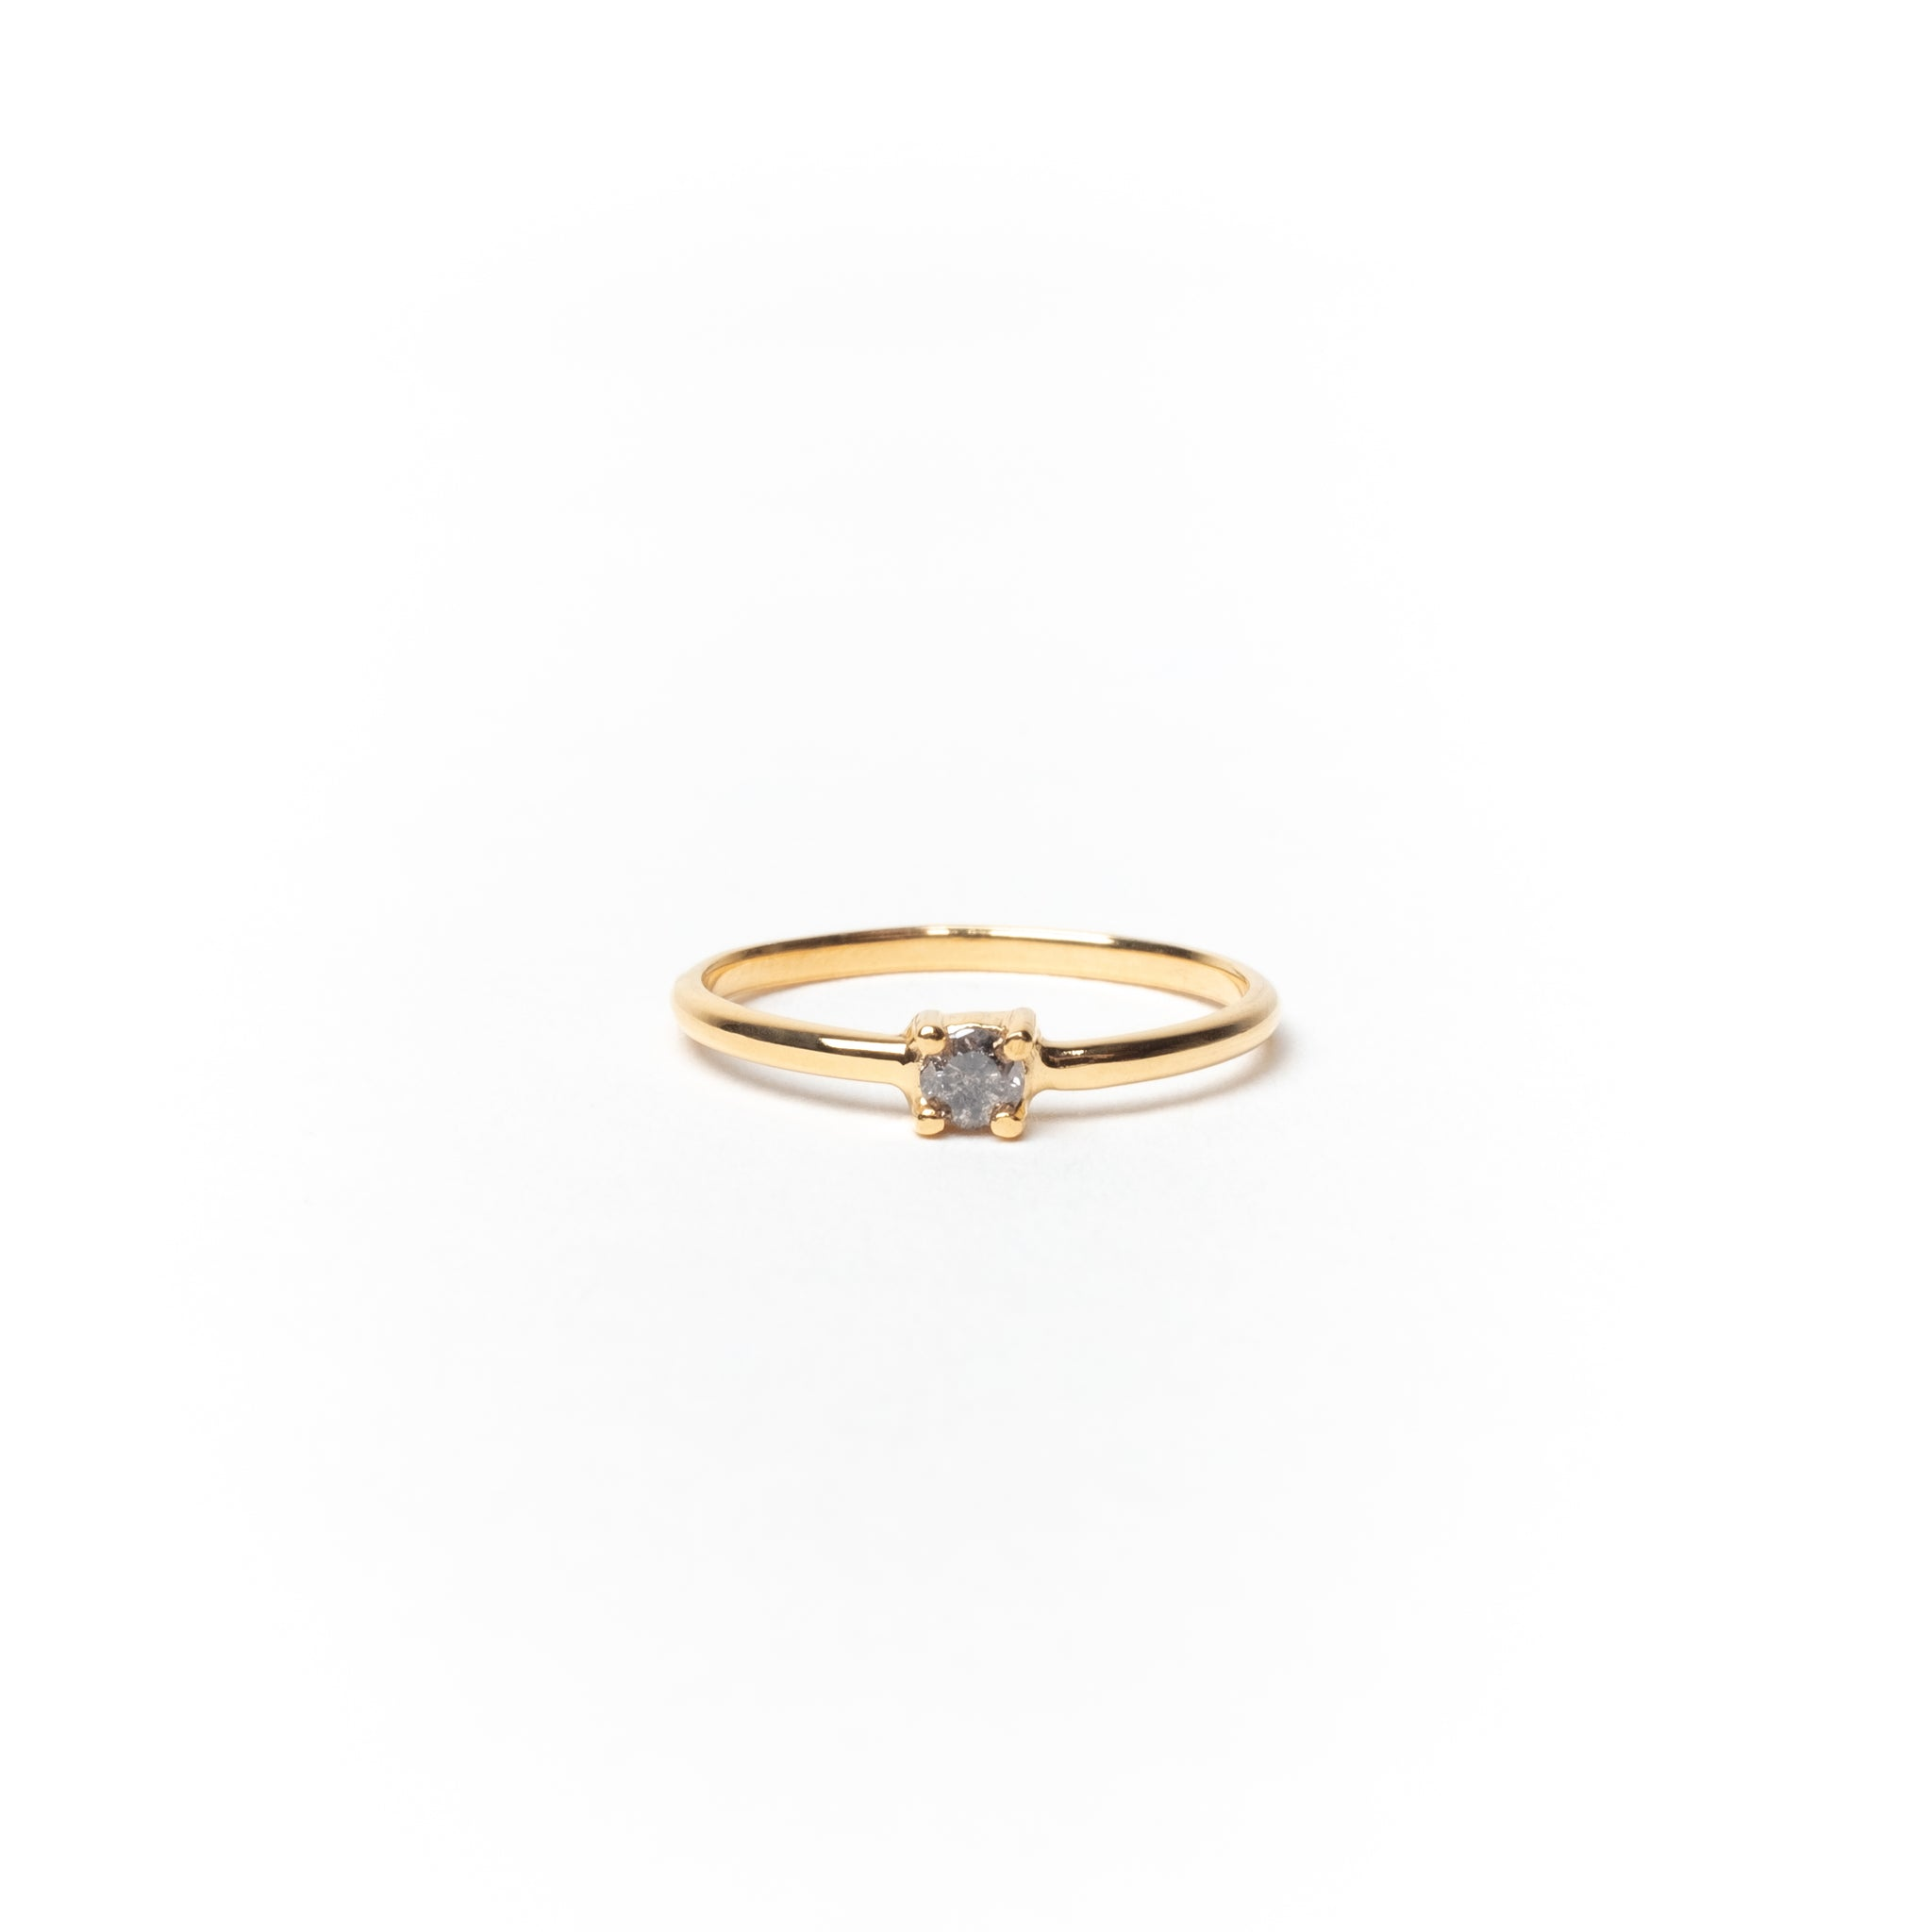 Ring with Round Salt & Pepper Diamond, Solid 14k Gold | FEW-OF-A-KIND